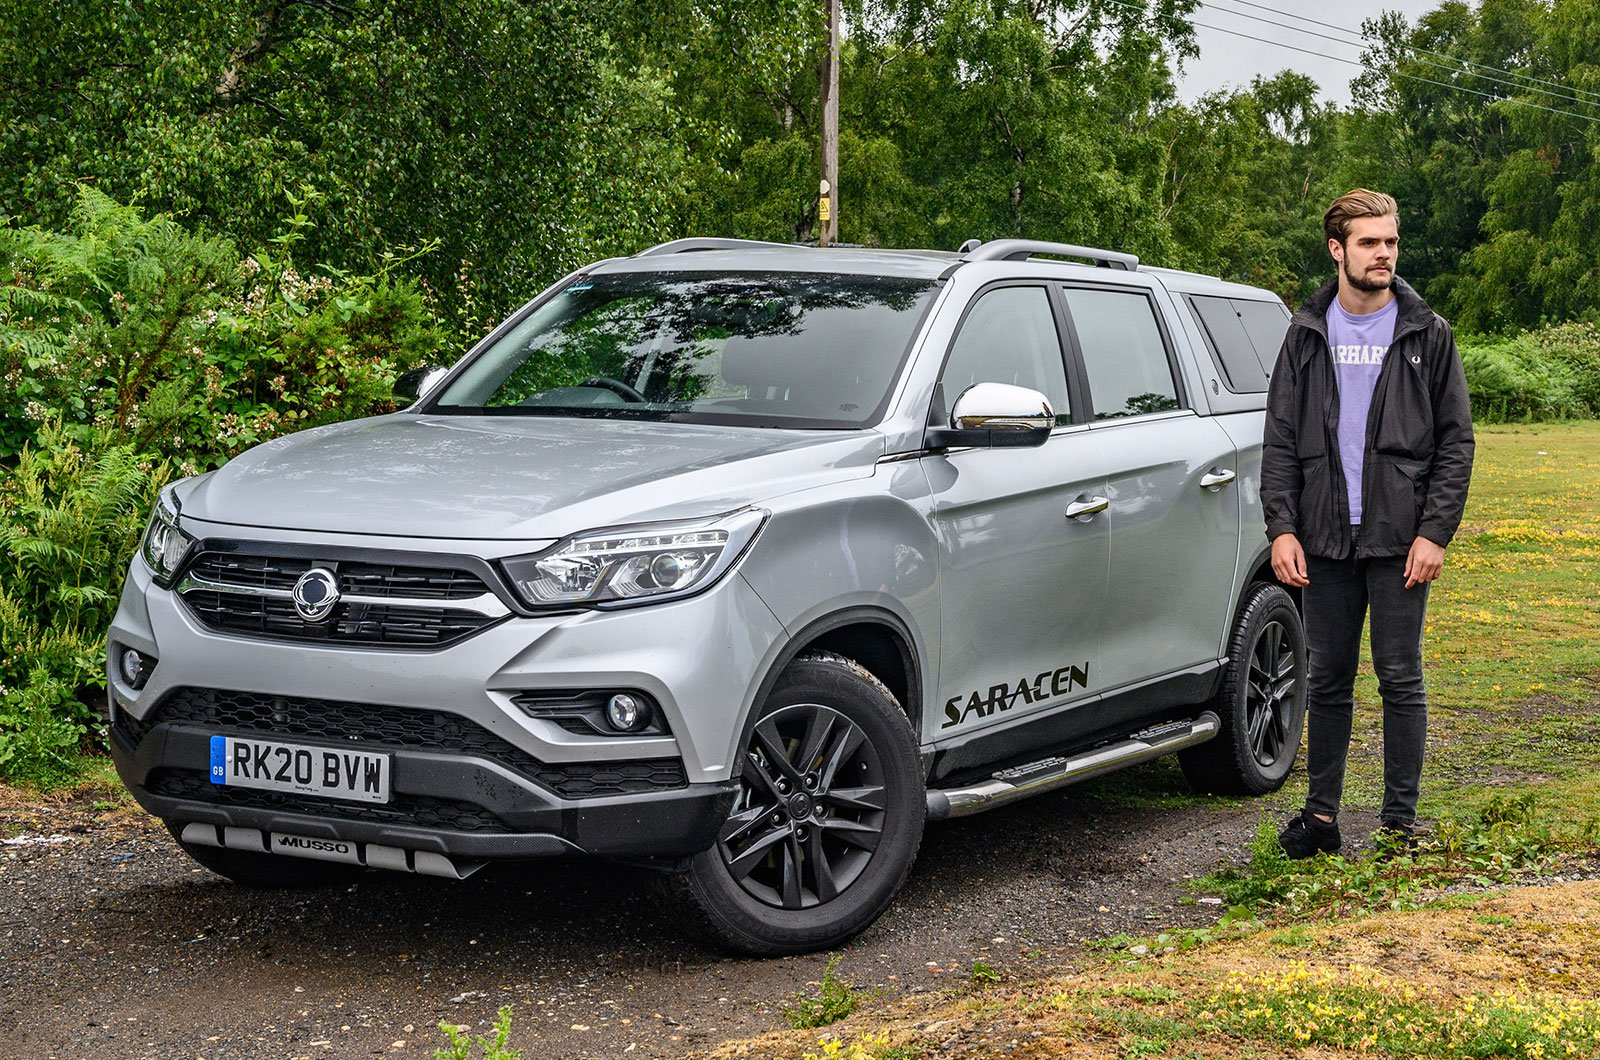 Ssangyong Musso with Oli